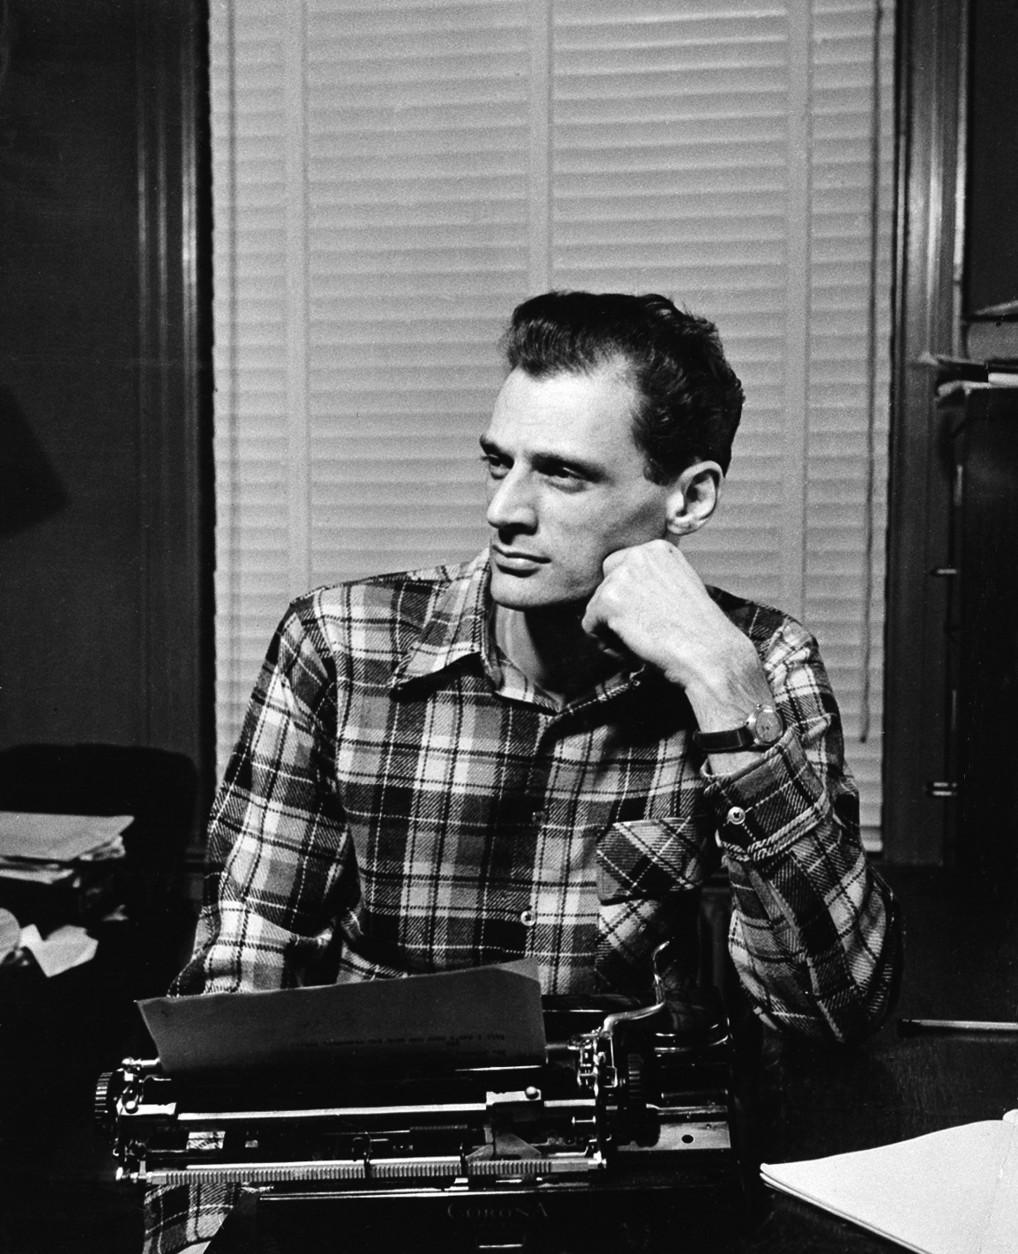 """Playwright Arthur Miller poses at his typewriter in New York City, May 2, 1949.  Miller is winner of the Pulitzer Prize for drama for his play """"Death of a Salesman.""""  (AP Photo)"""